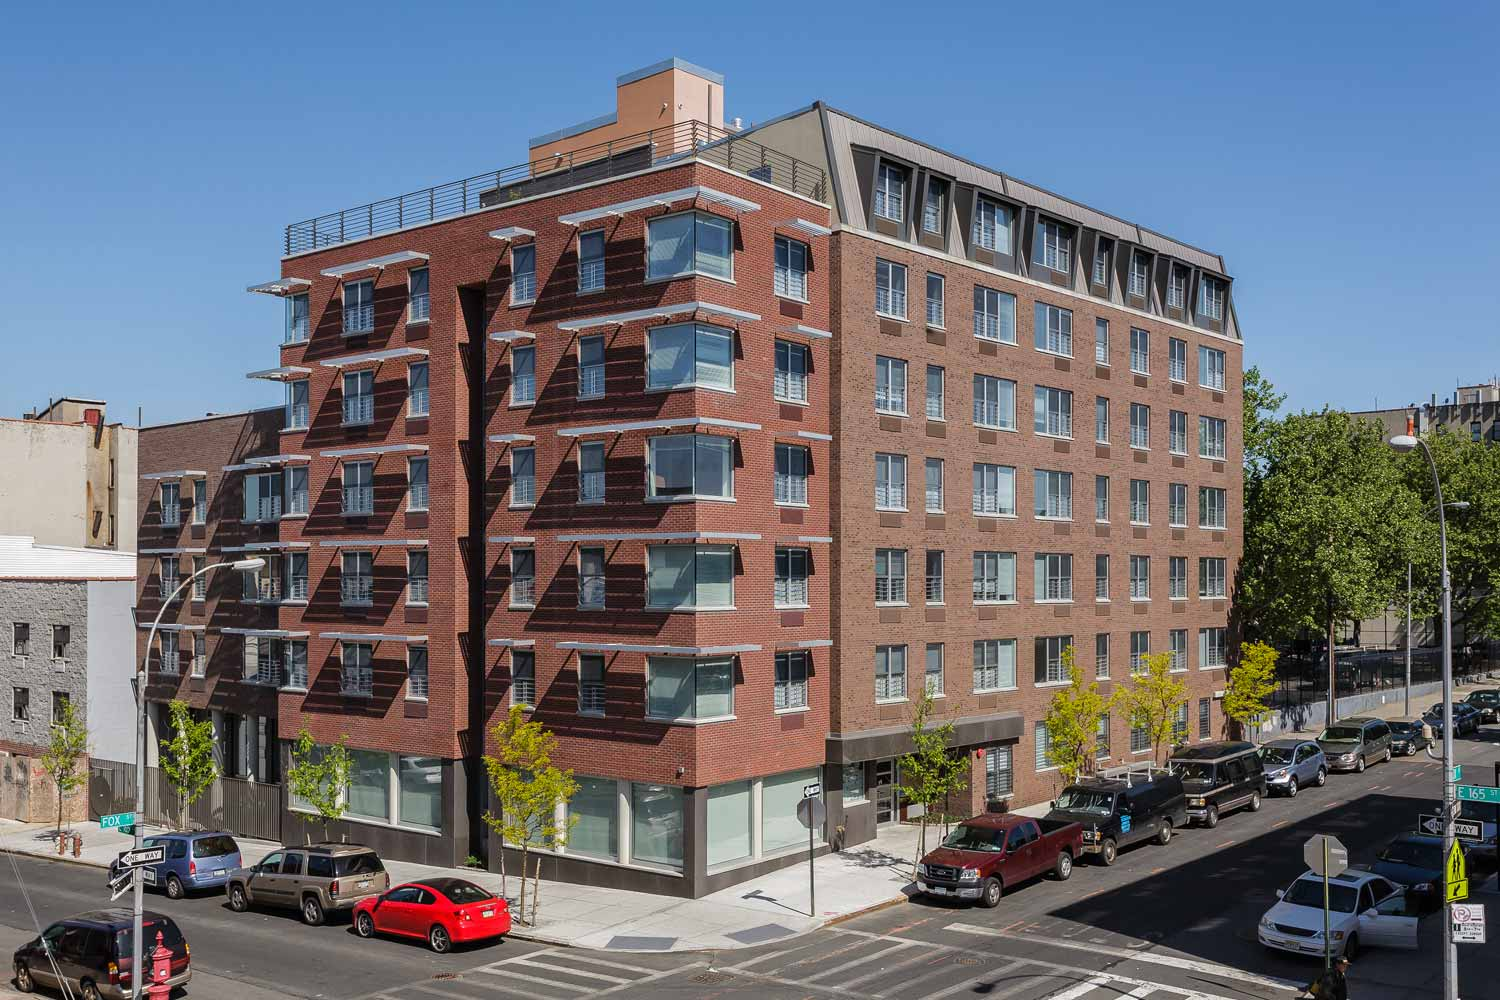 Award-winning LEED Gold project by OCV Architects providing affordable housing to formerly homeless and low-income individuals.